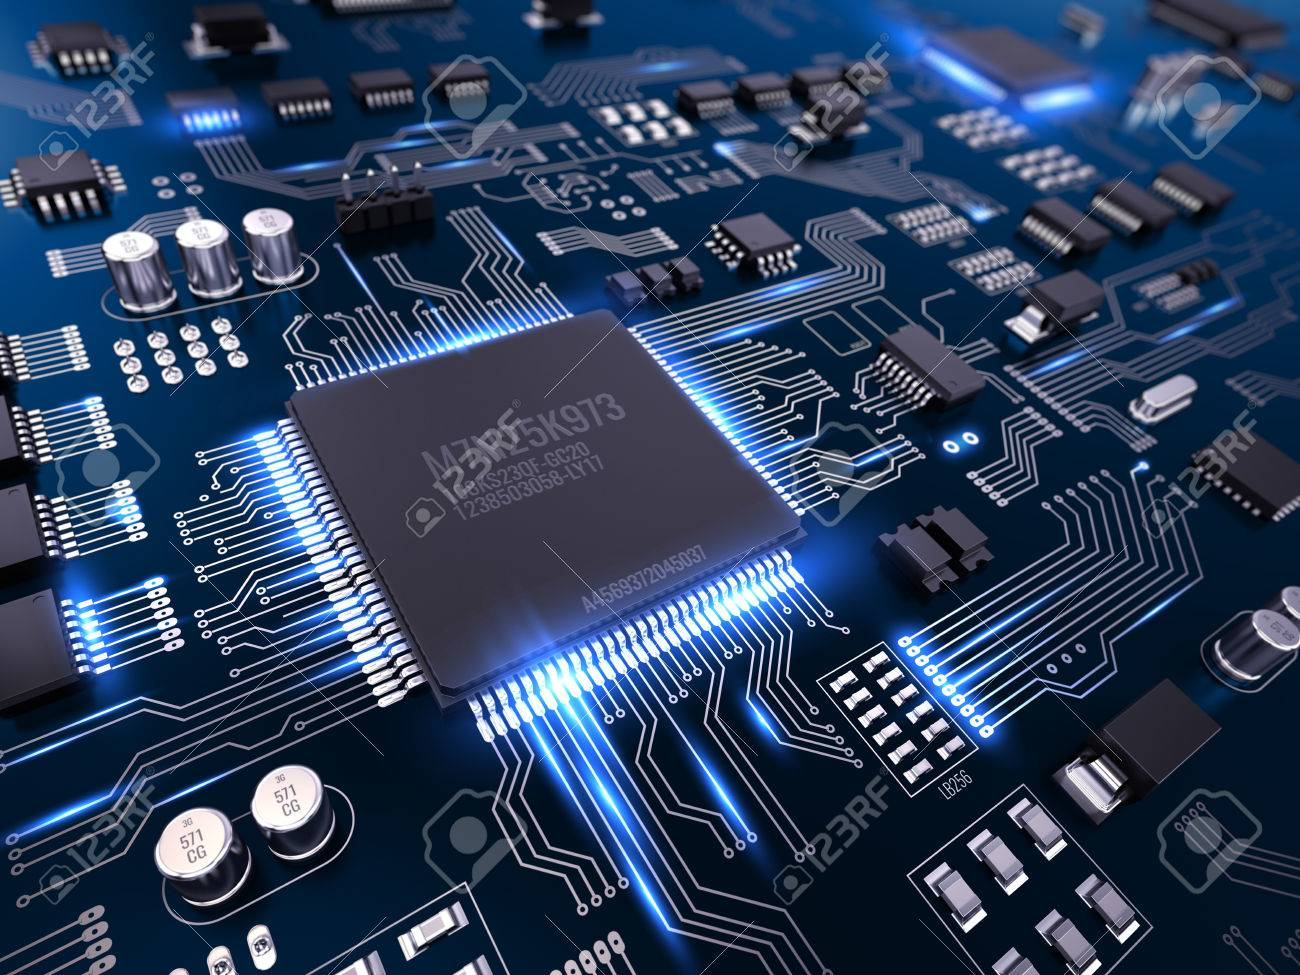 high tech electronic pcb (printed circuit board) with processorhigh tech electronic pcb (printed circuit board) with processor and microchips 3d illustration